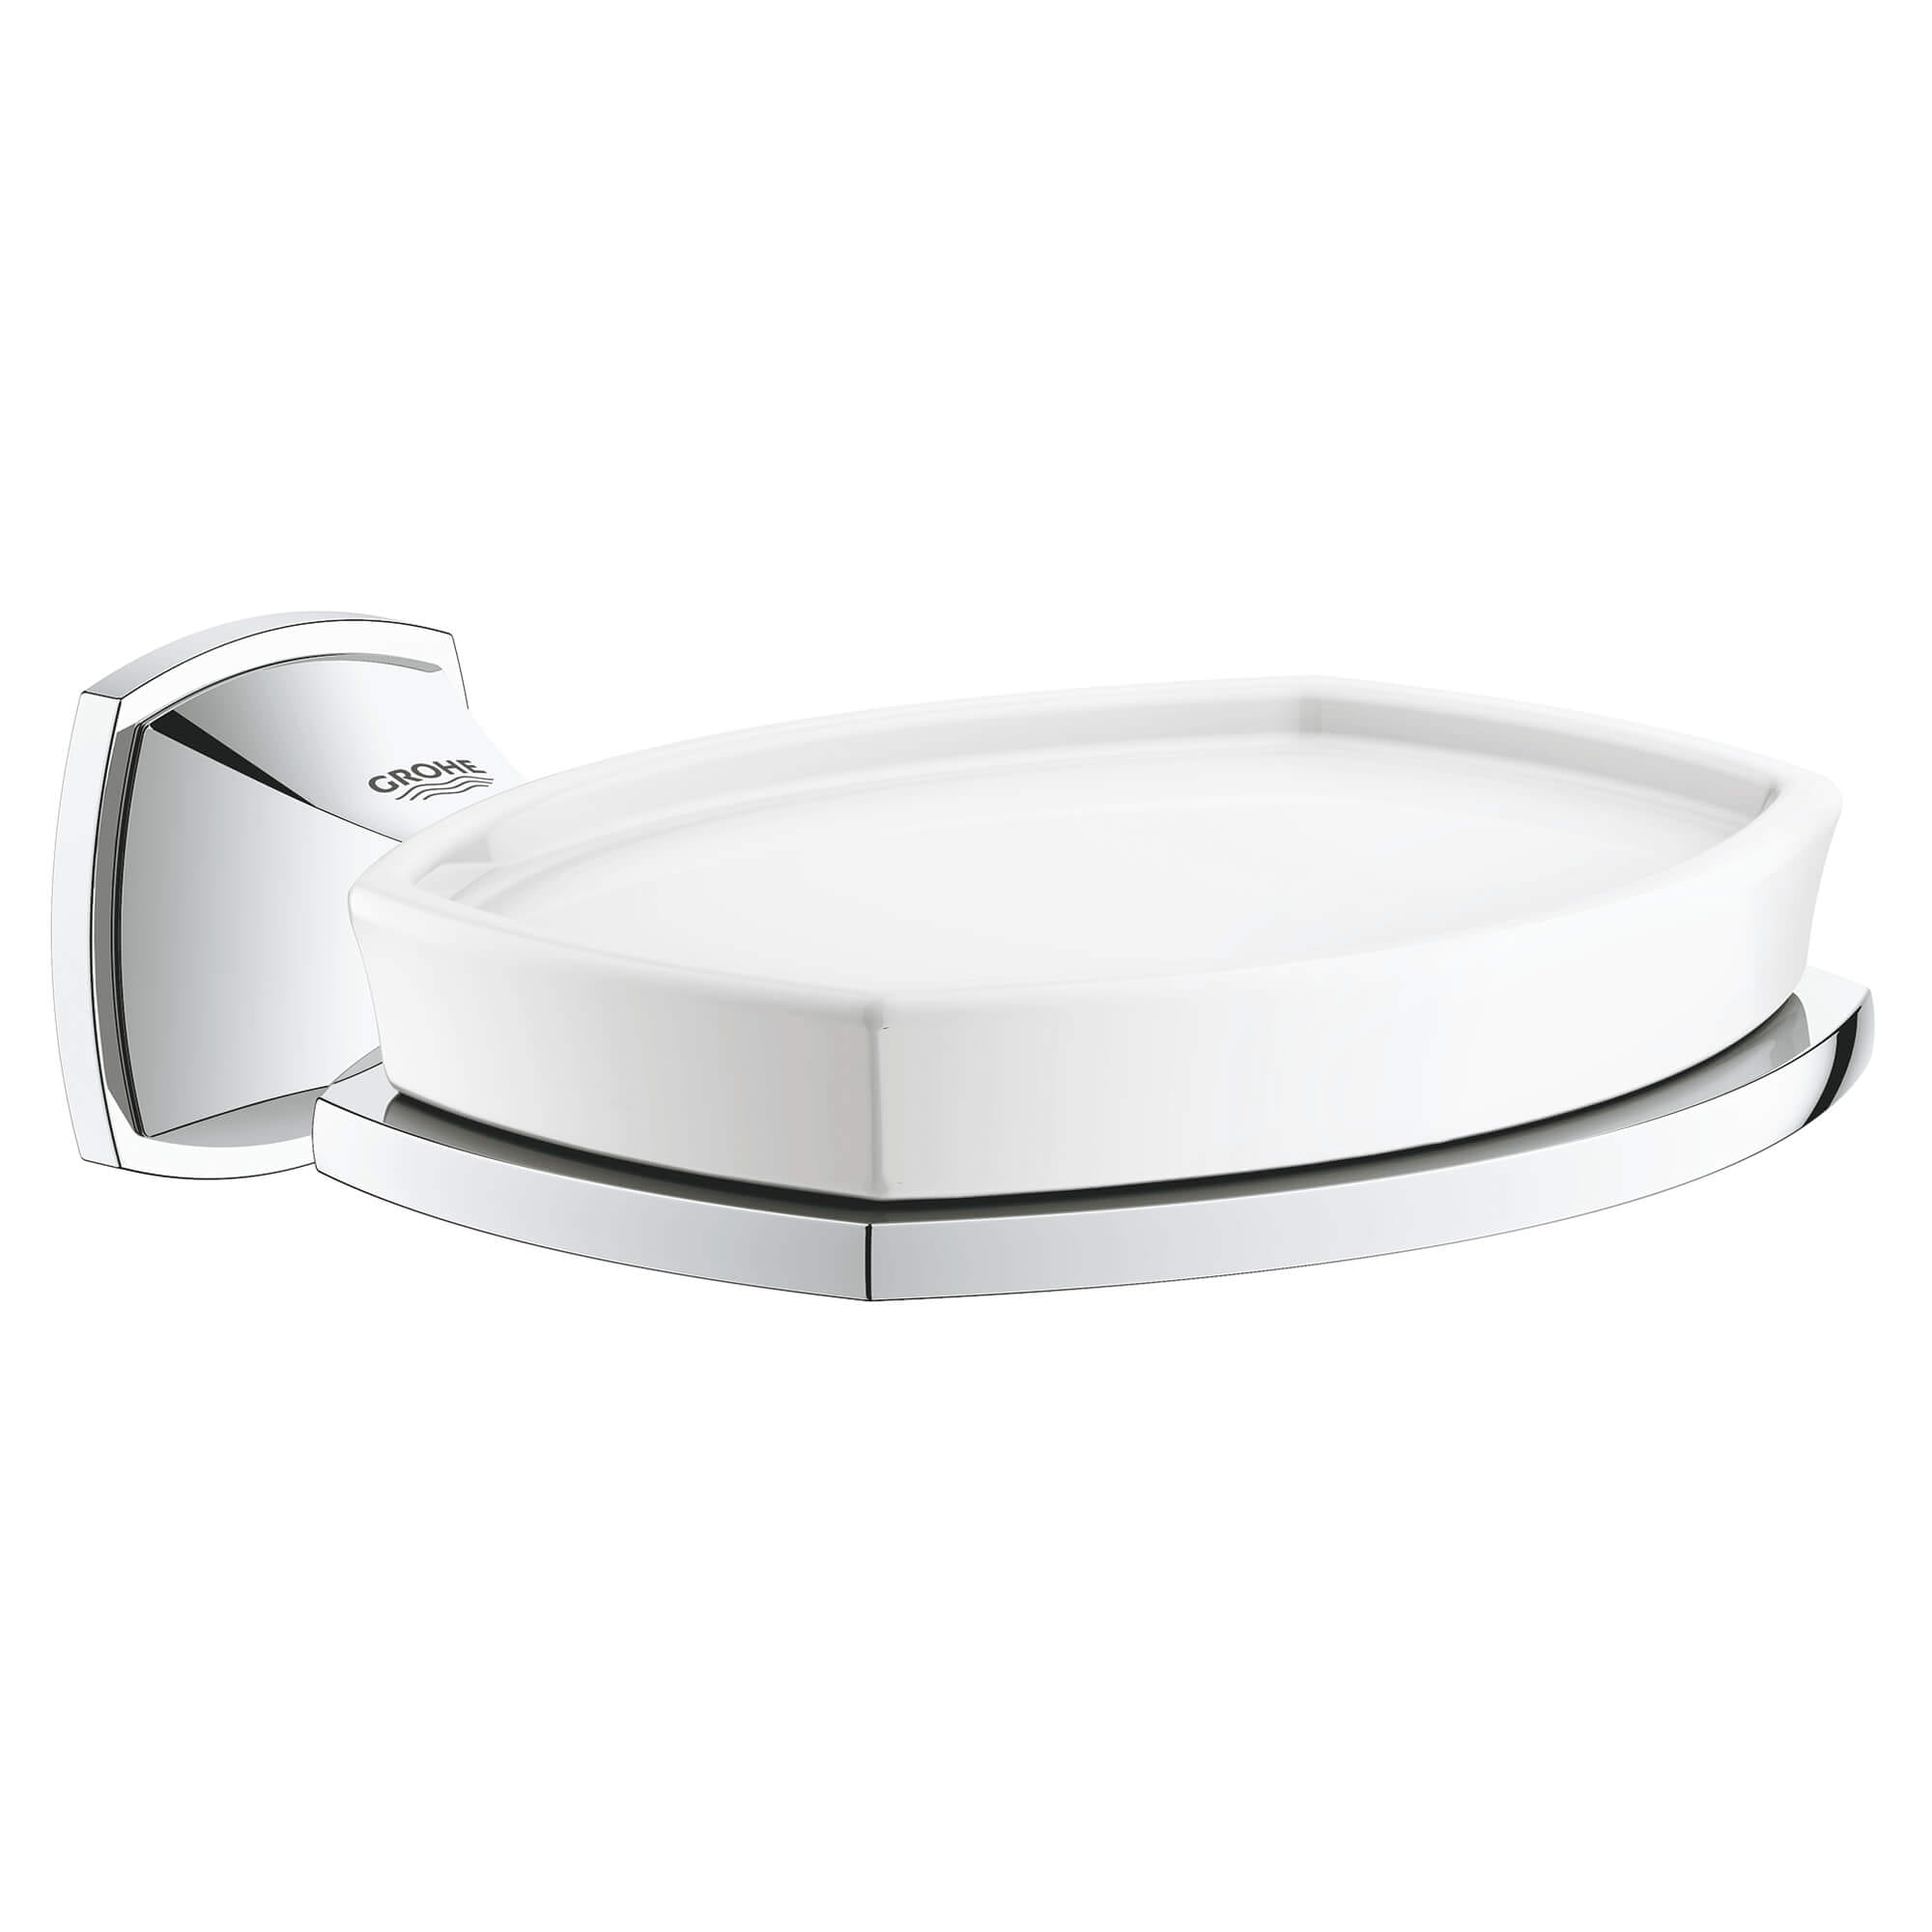 Ceramic Soap Dish with Holder GROHE CHROME